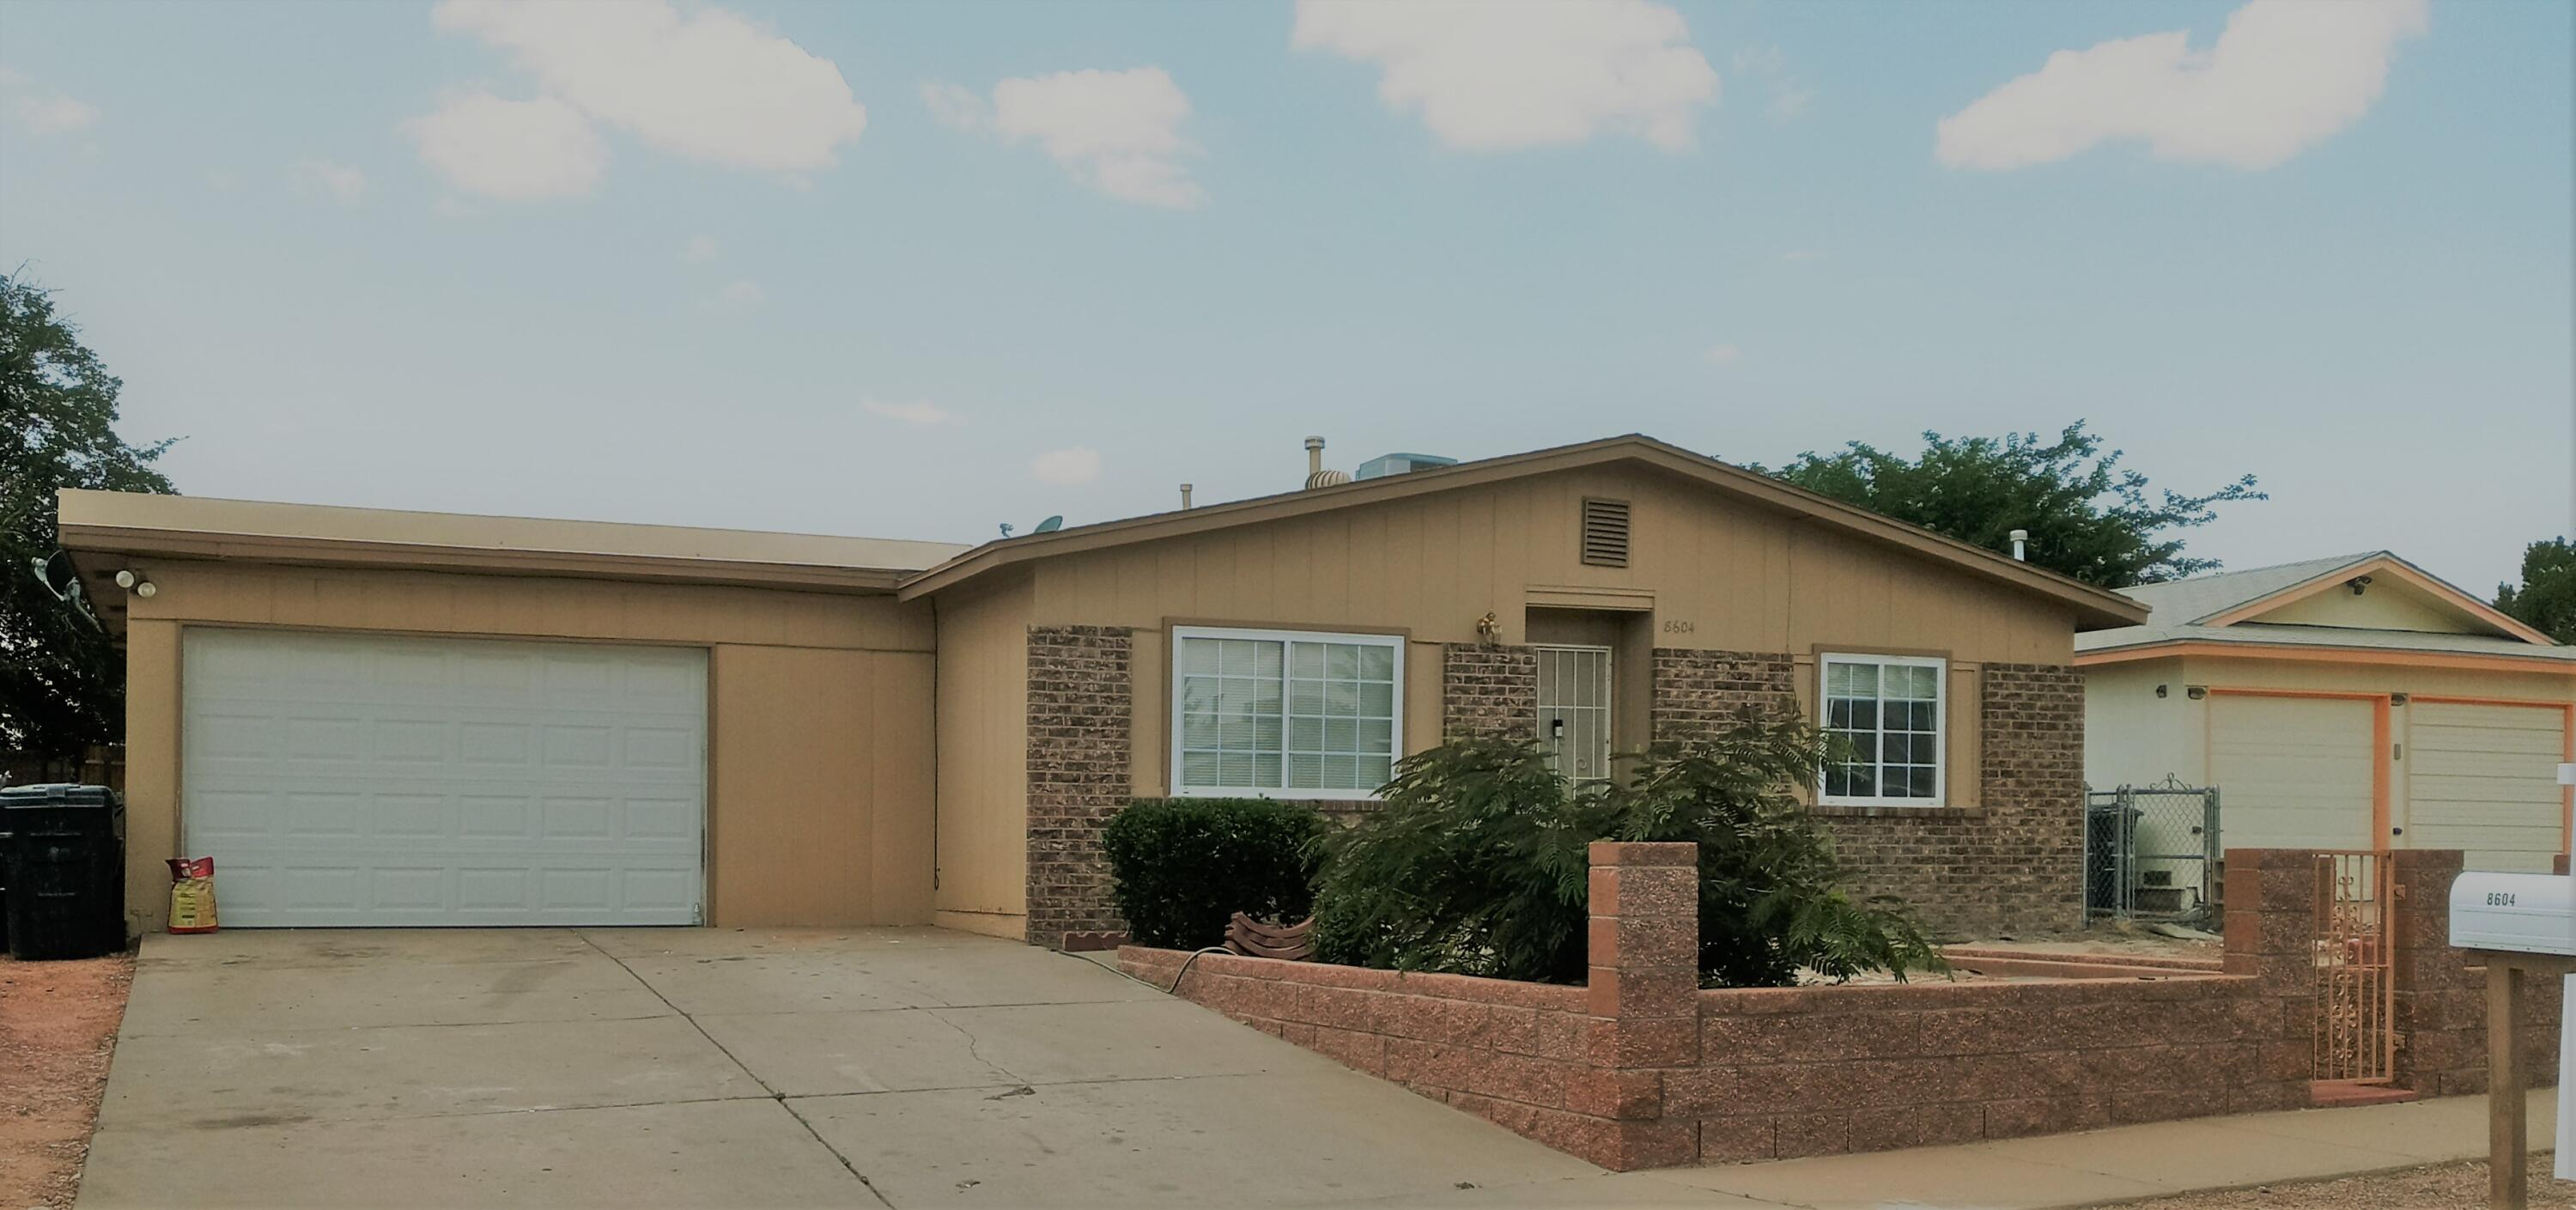 Three bedroom 1.75 bath. Living area with fireplace. Large back yard. Near schools, park, shopping centers and more.